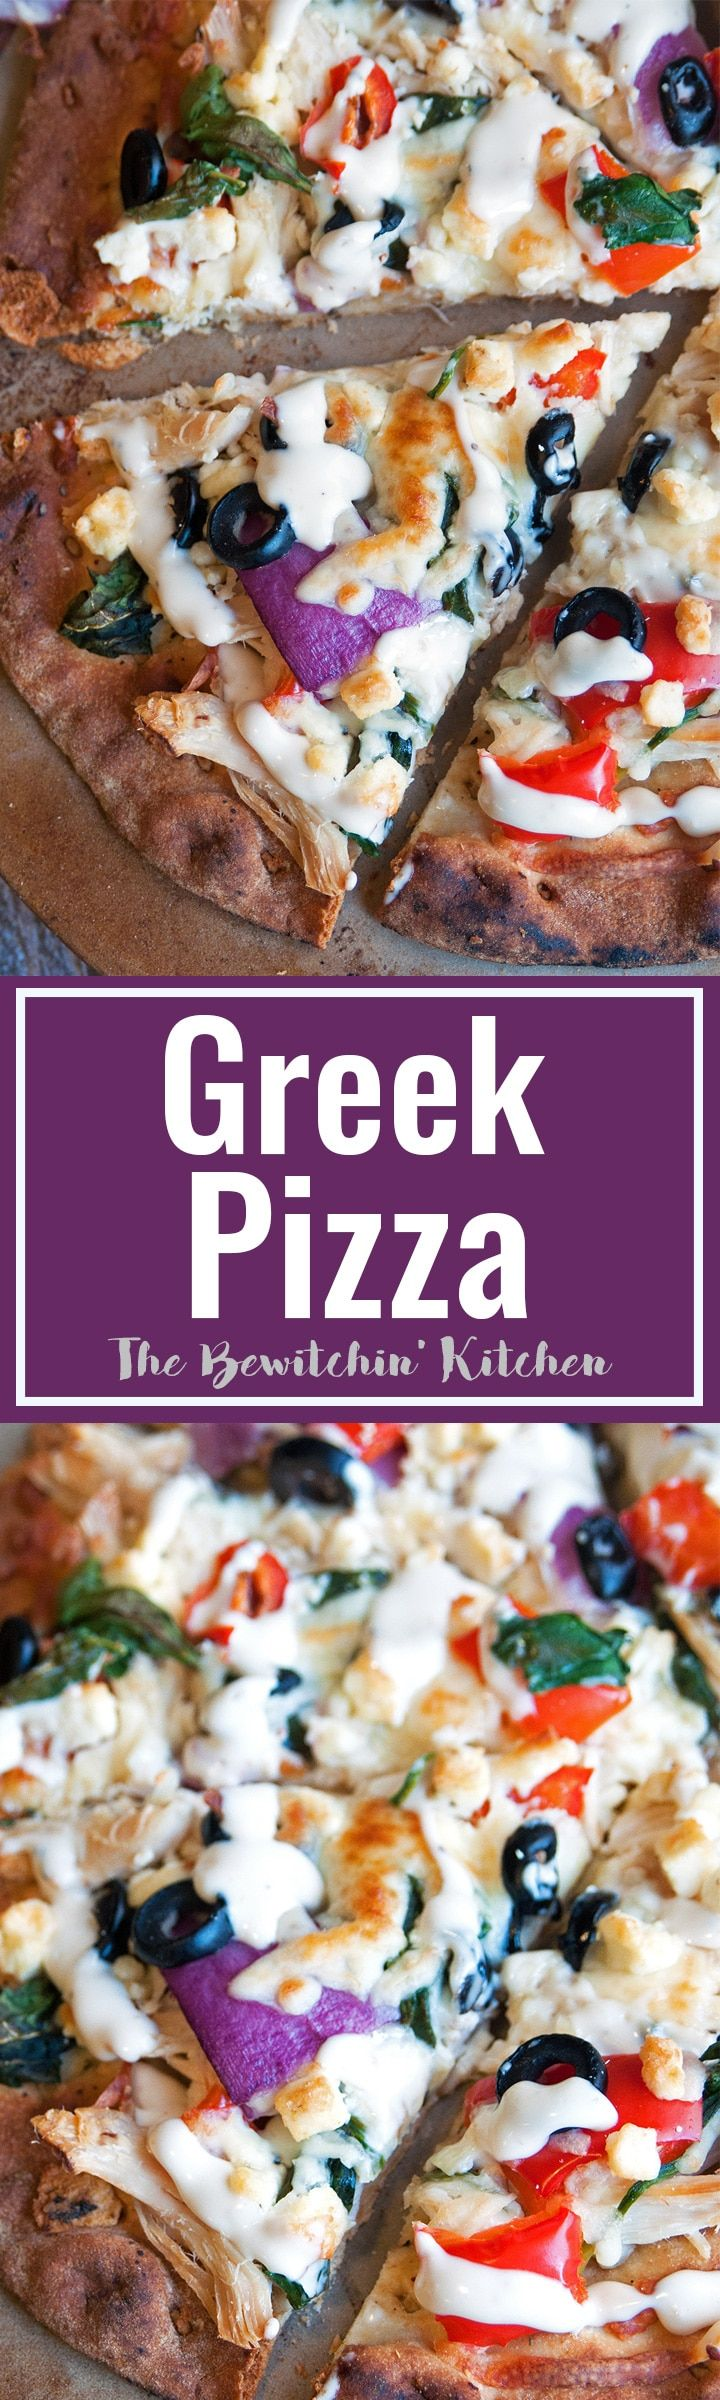 Greek Pizza - pizza crust topped with tangy greek vinaigrette, chicken, red pepper, spinach, olives , purple onion, feta and mozzarella. Finished with a greek tzatziki drizzle. So much yum happening right here. | thebewitchinkitchen.com